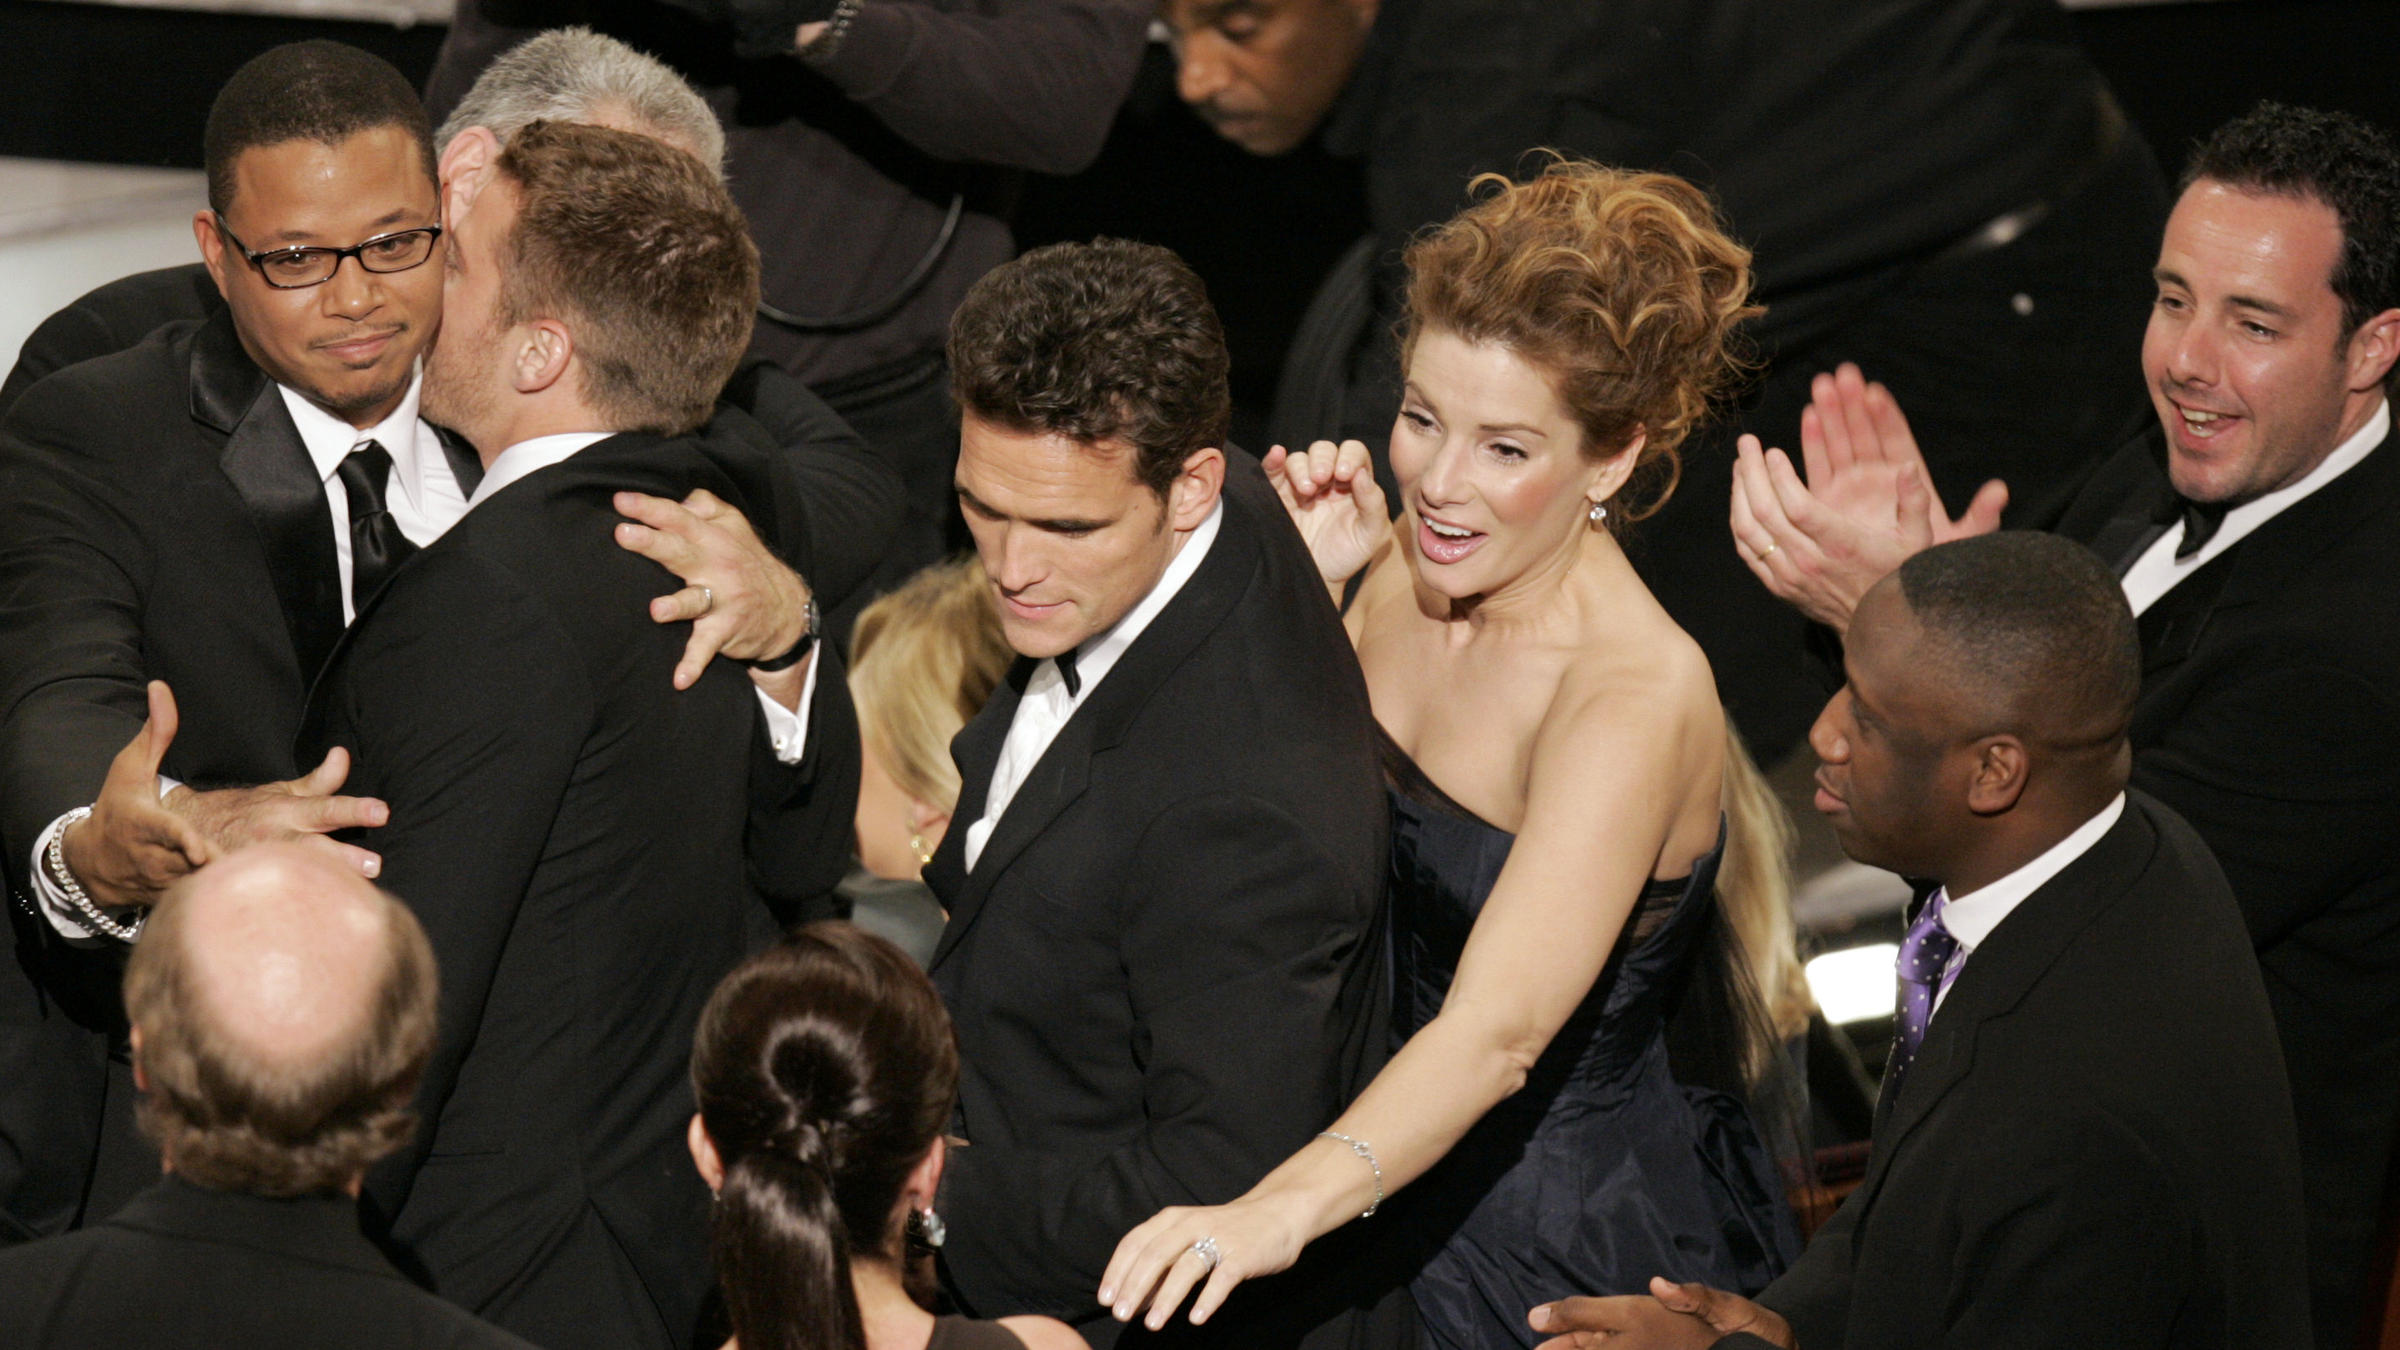 The Cast Of Crash Celebrates After Its Surprise Upset Brokeback Mountain For Best Picture At 78th Academy Awards In 2006